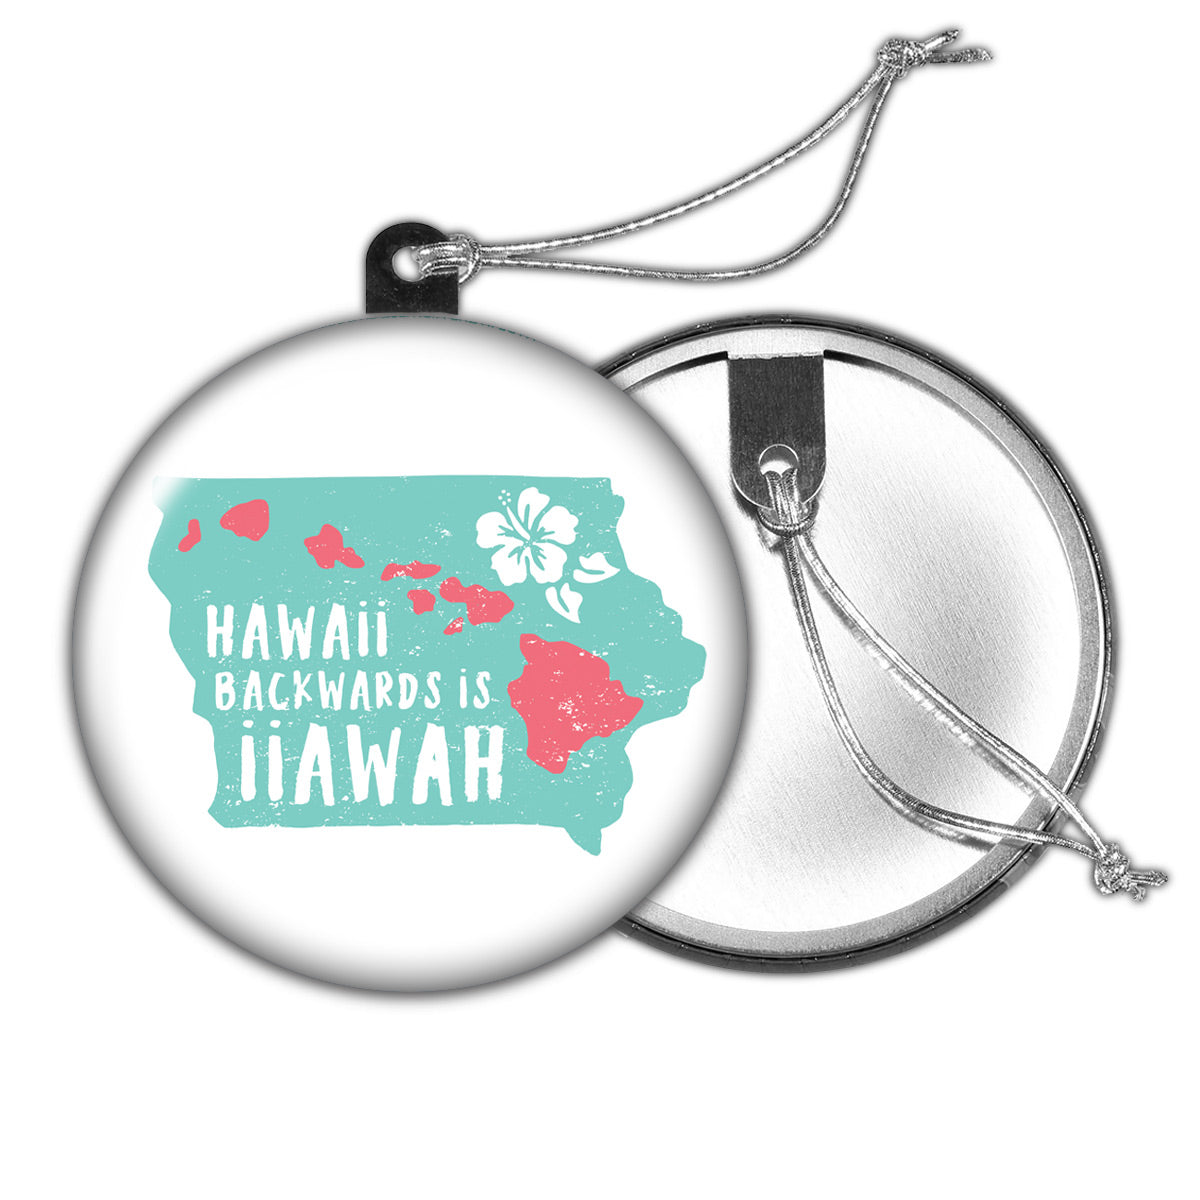 Hawaii Backwards is Iiawah Holiday Ornament